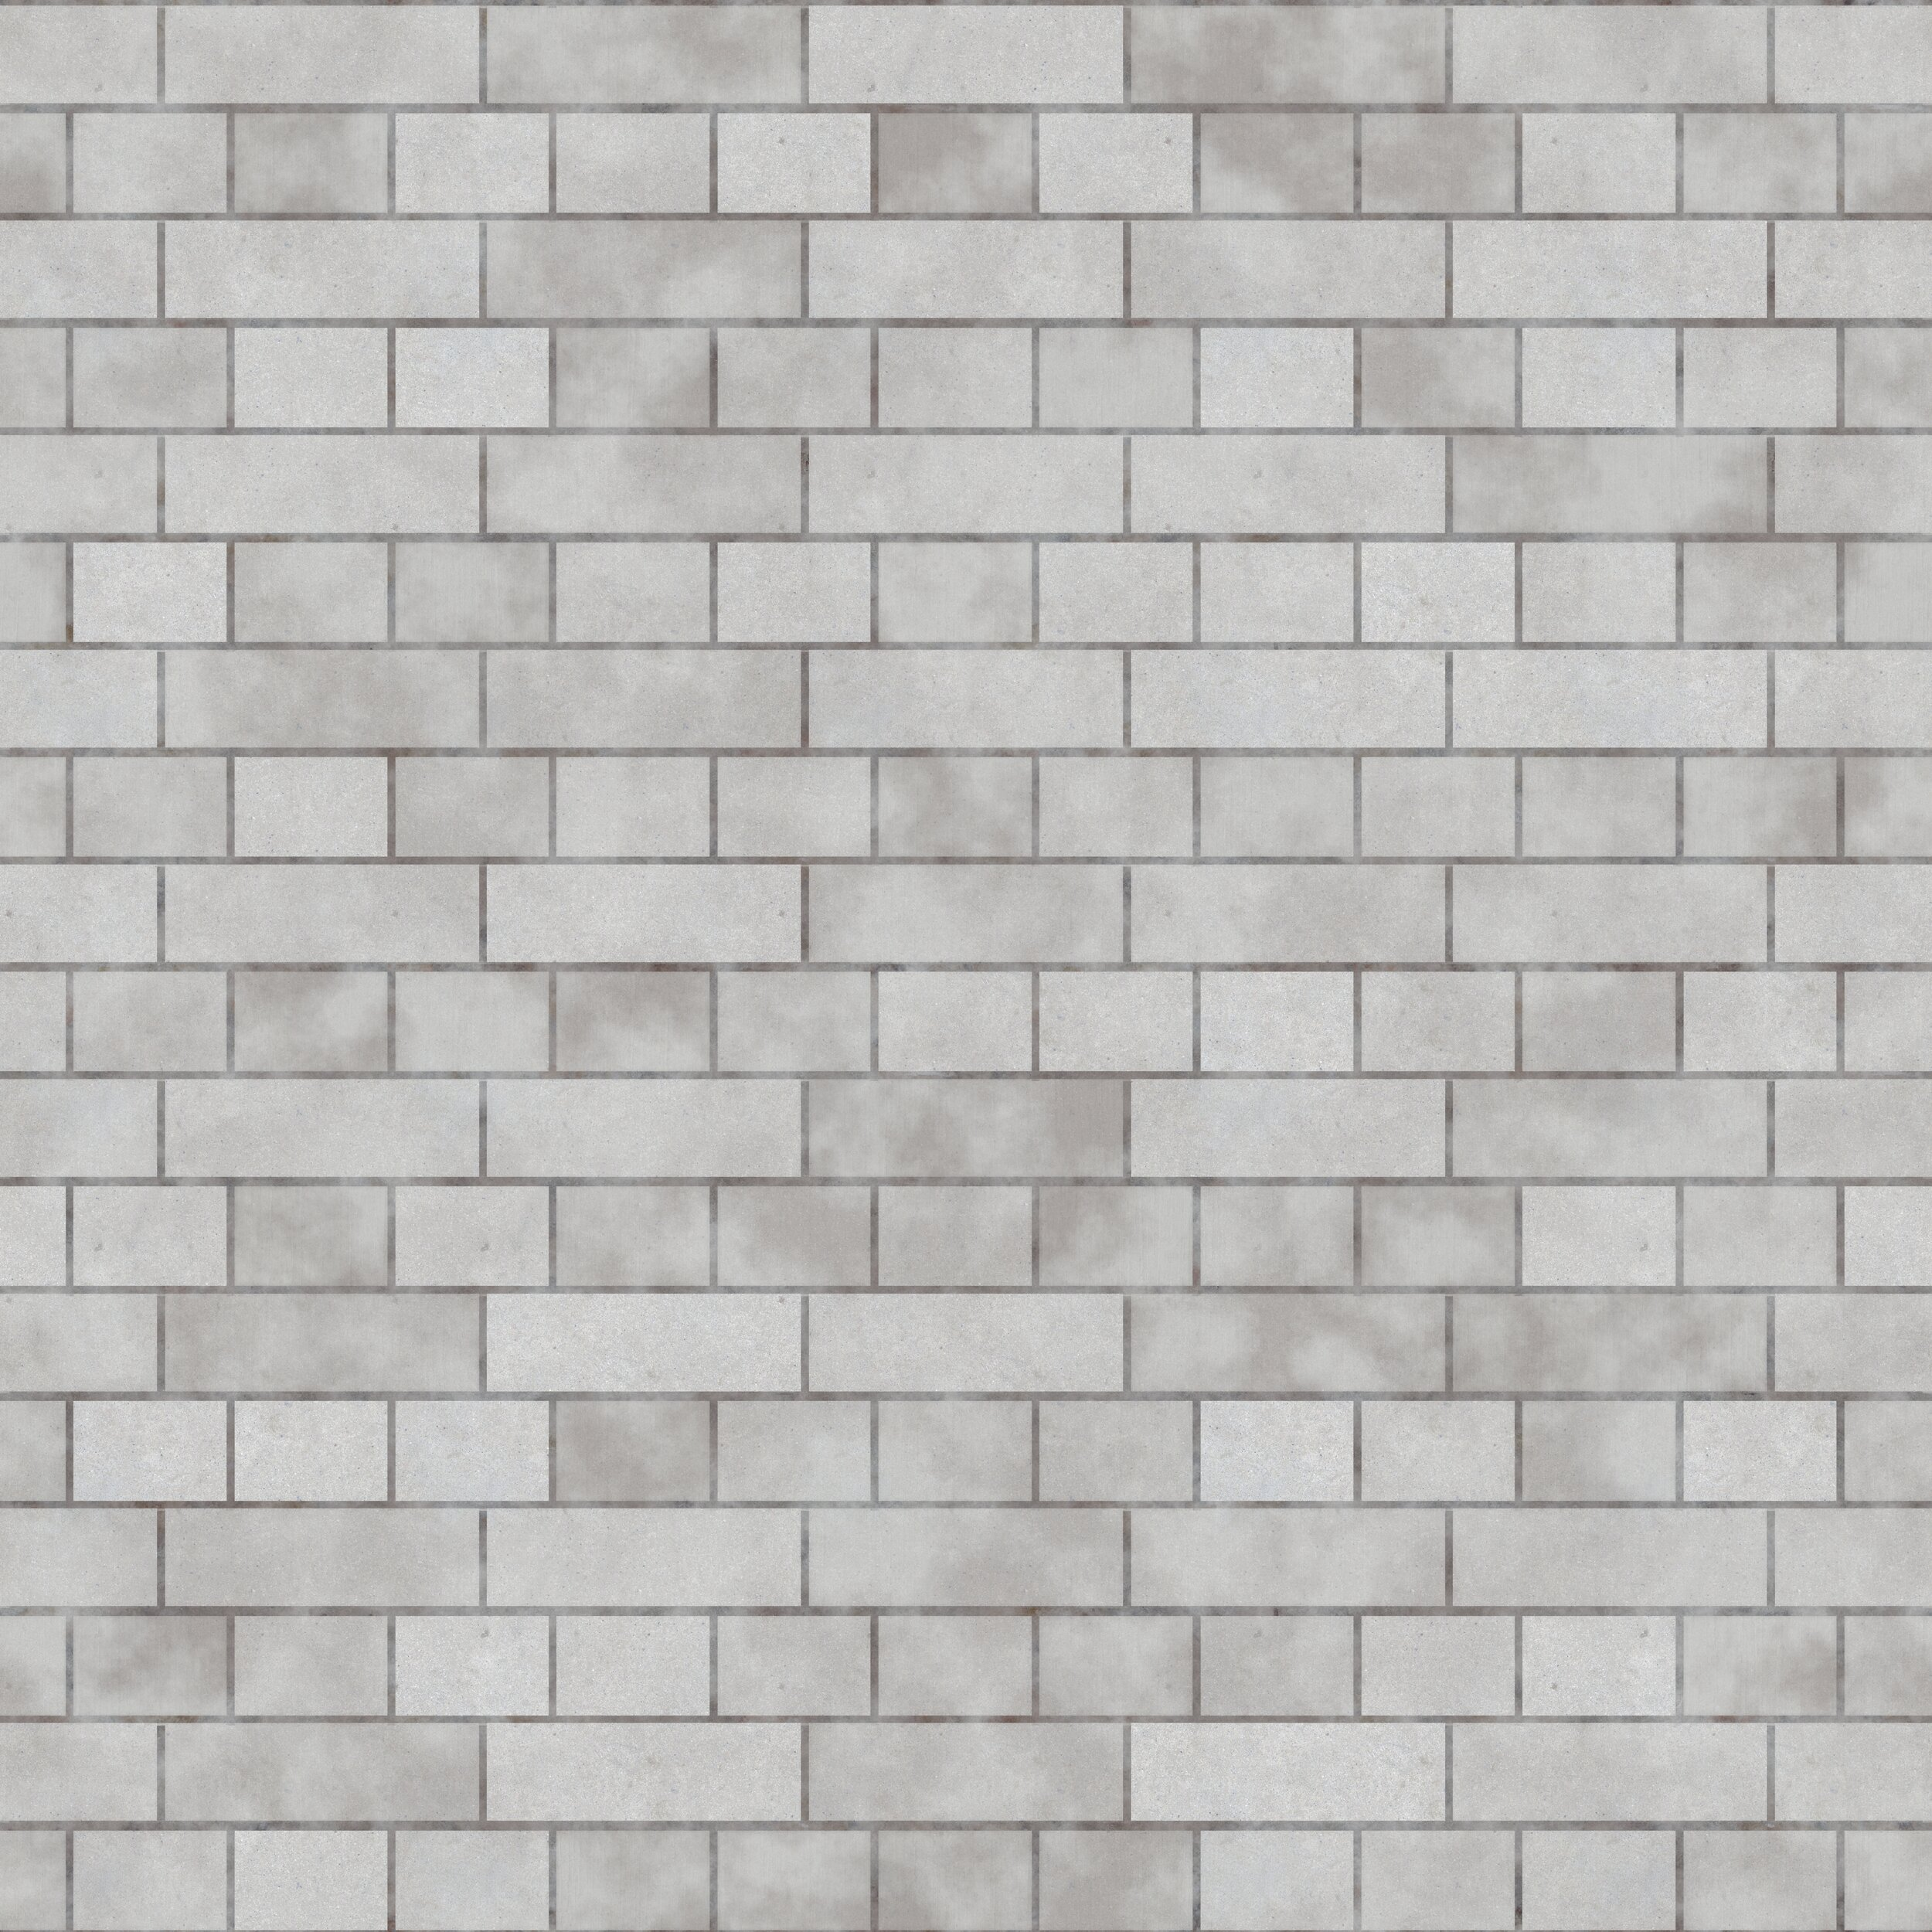 Bricks_AI_01C_White_COLOR.jpg